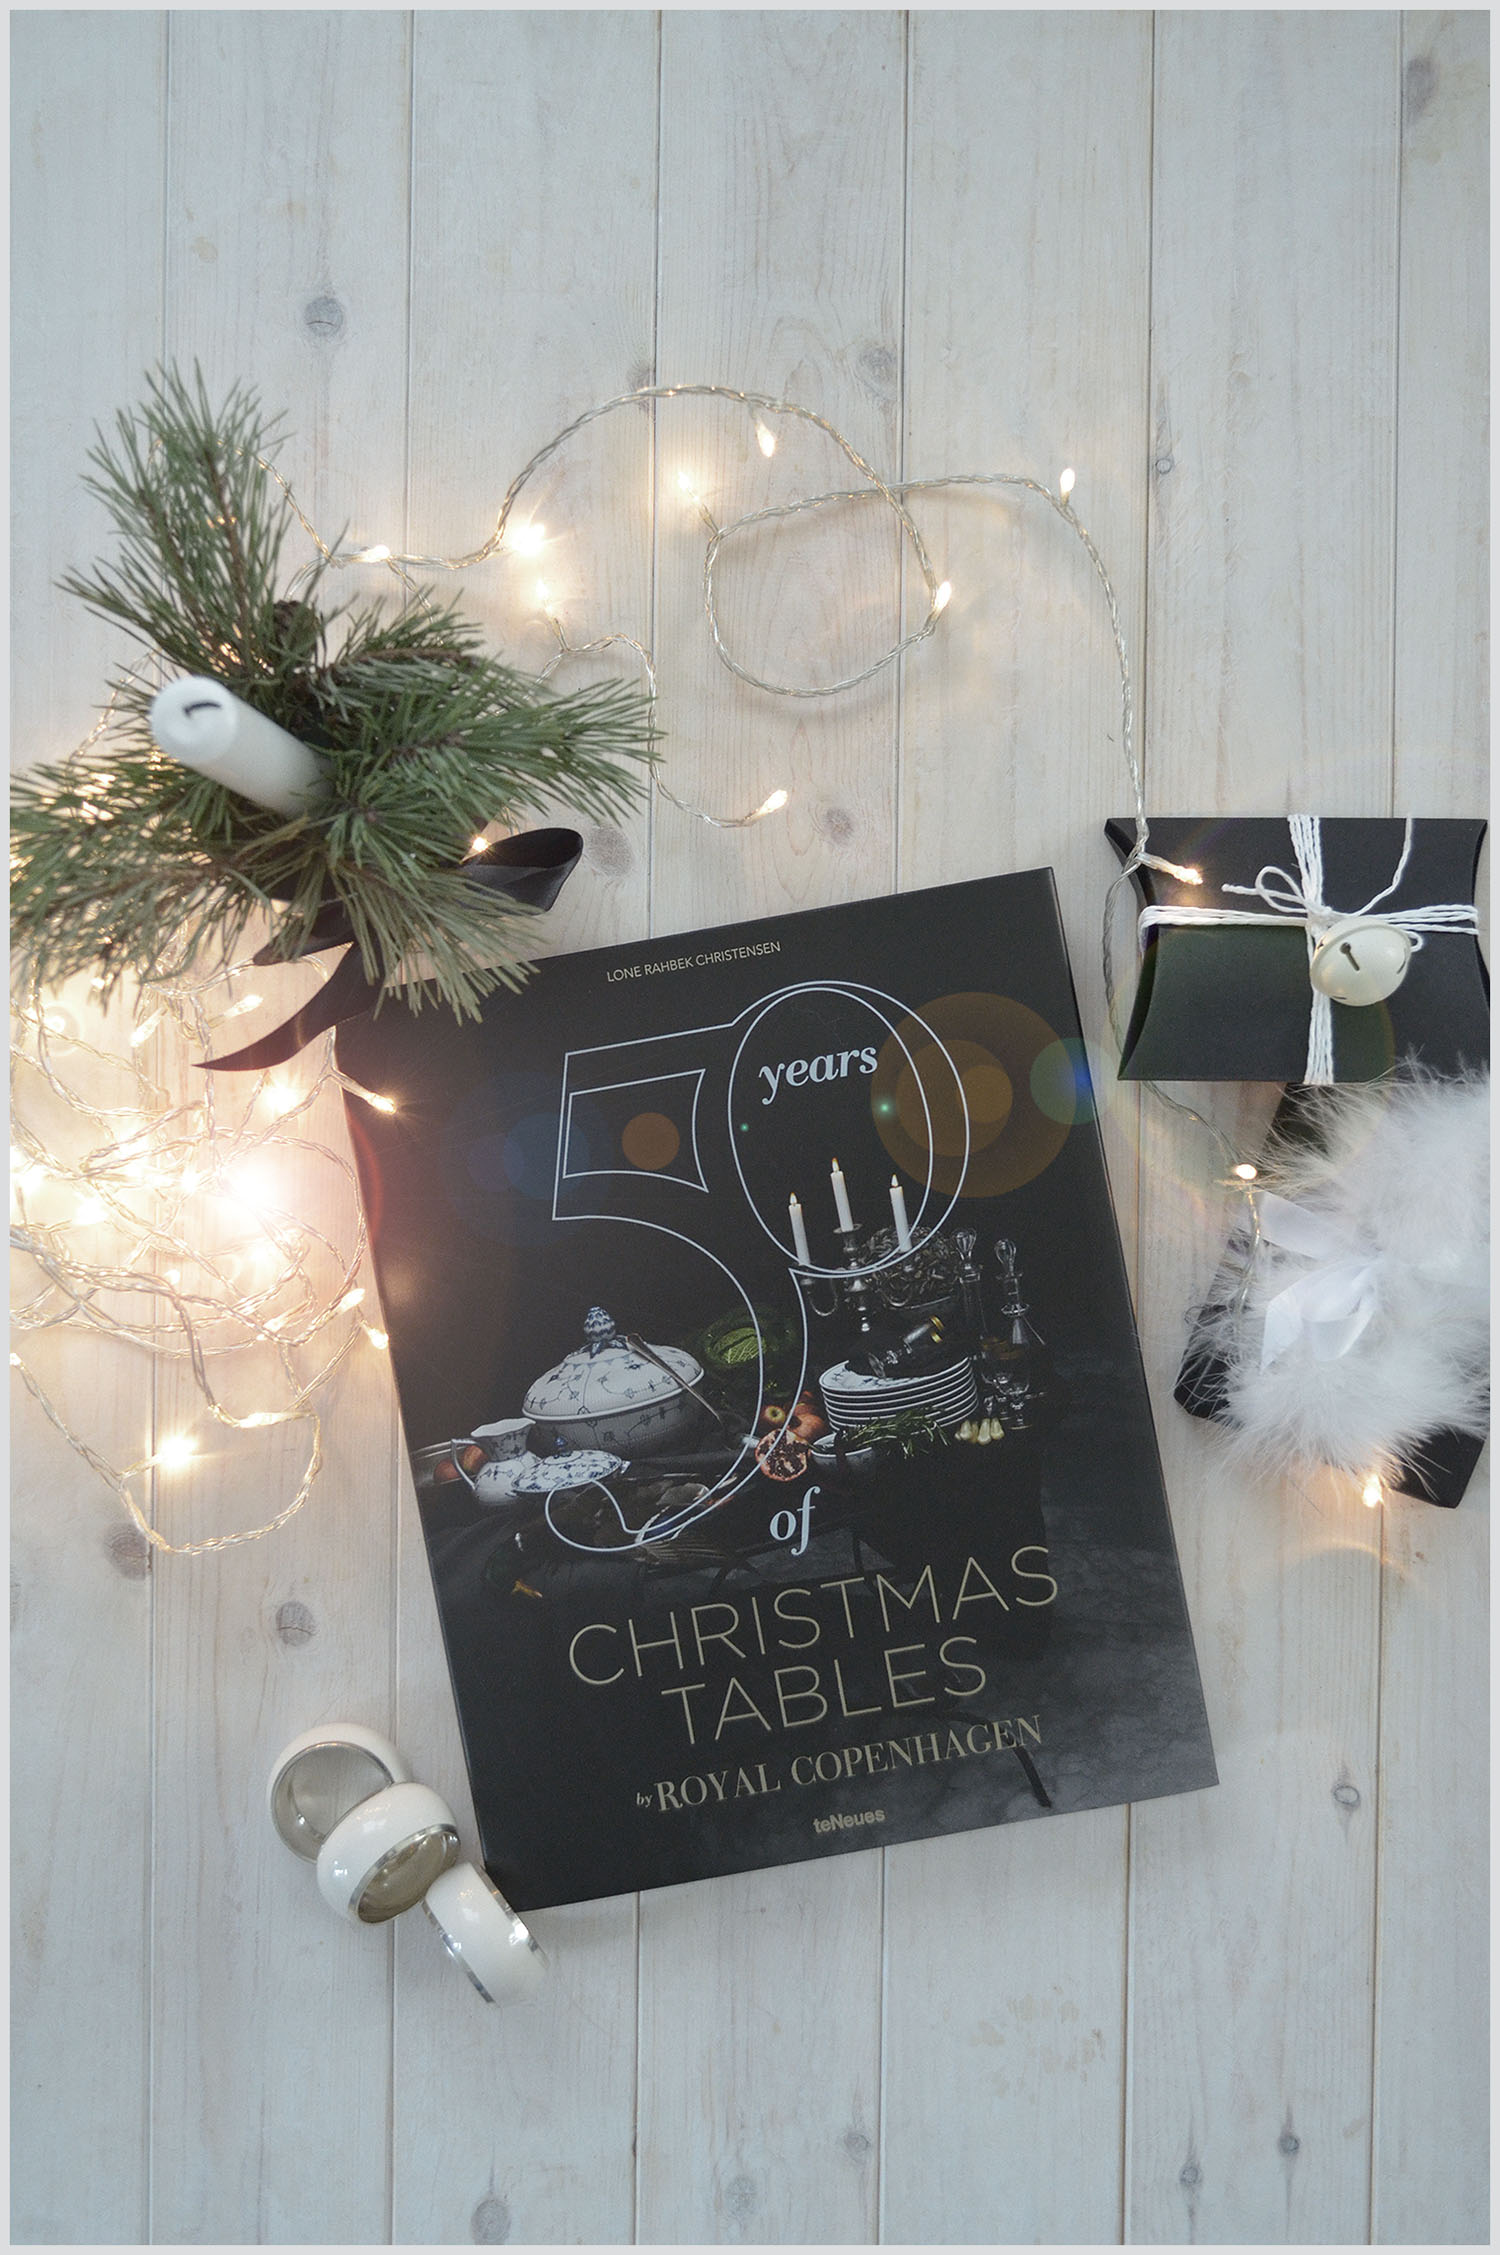 50 Years of Christmas Tables